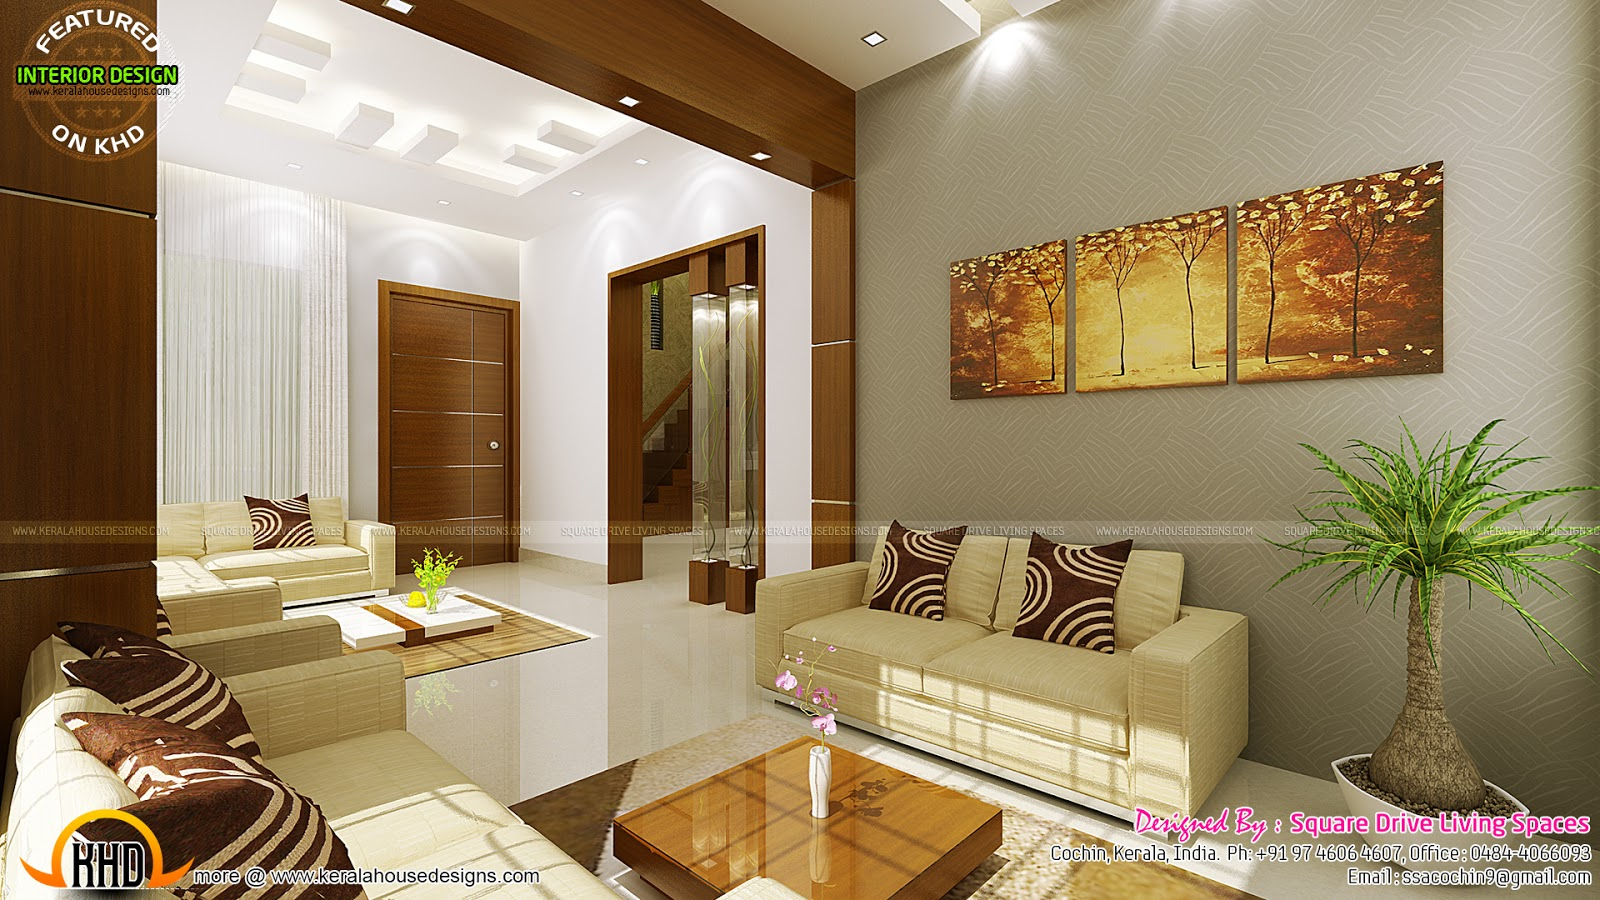 Contemporary kitchen dining and living room kerala home for House designs interior photos